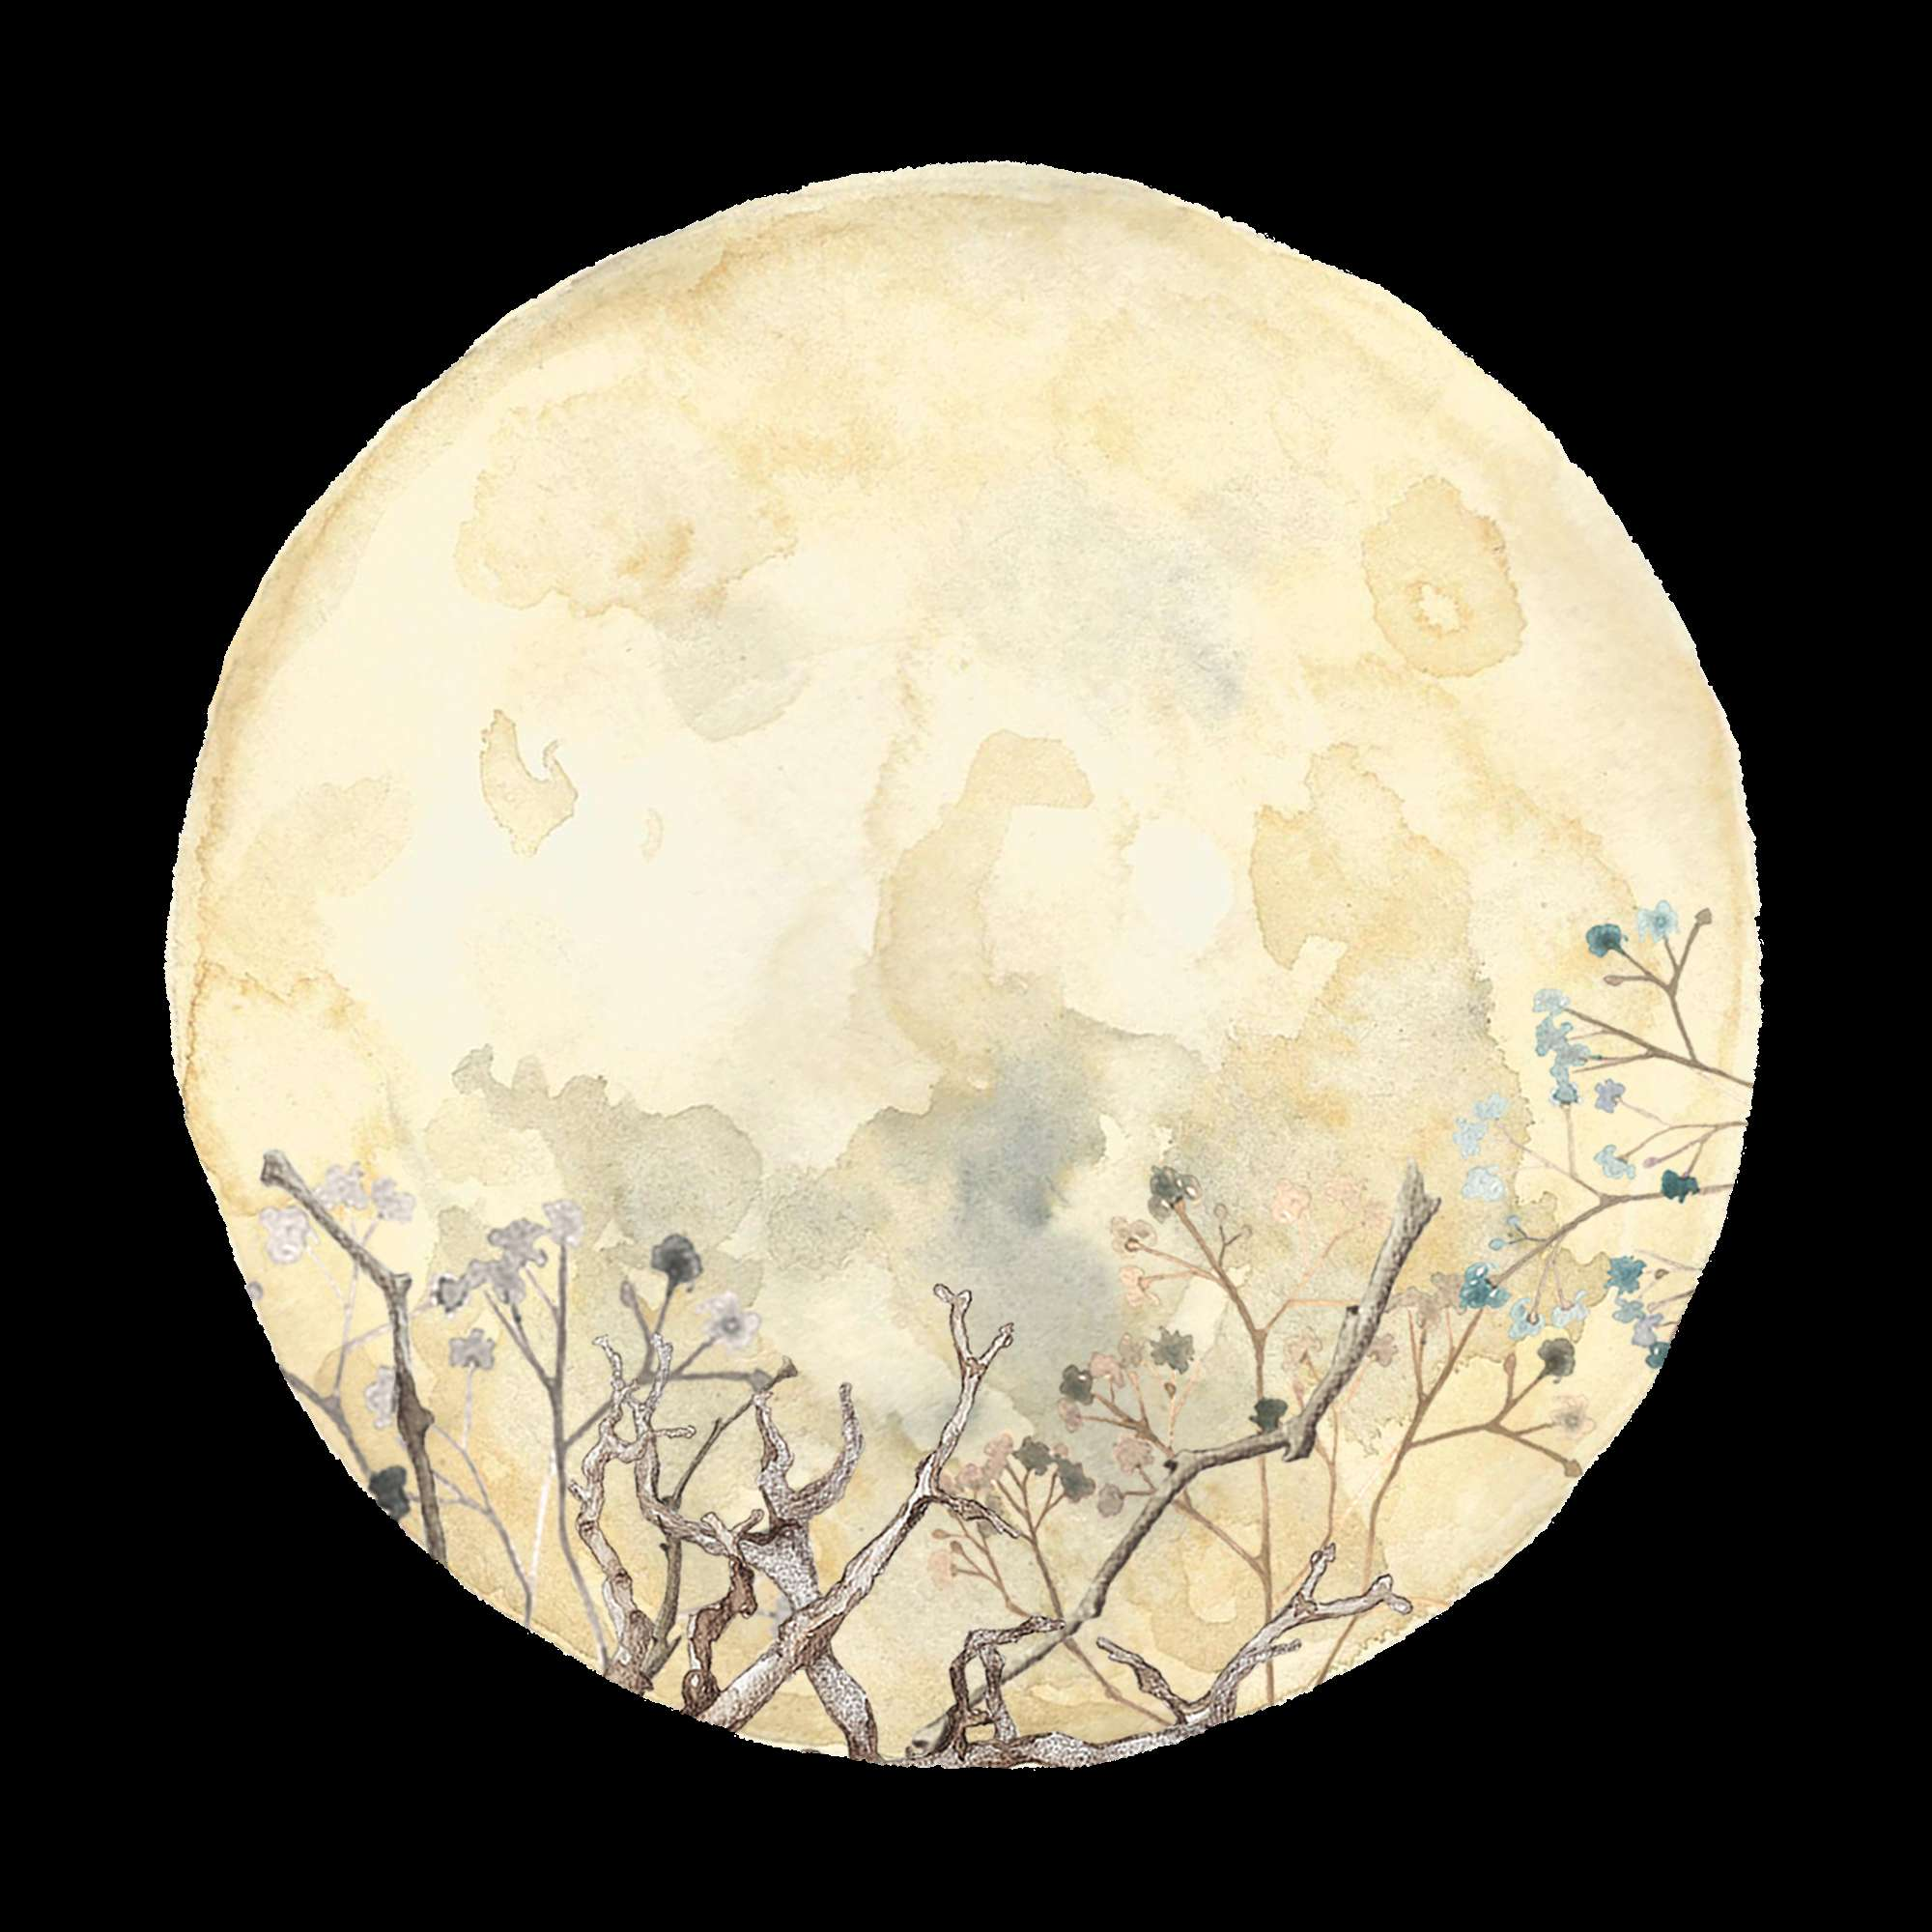 JOIN THE MOONCLUB - weekly lunar astrology videos, new & full moon horoscopes, a monthly live call & more BY THE LIGHT OF THE MOON $23/month or $25/one month